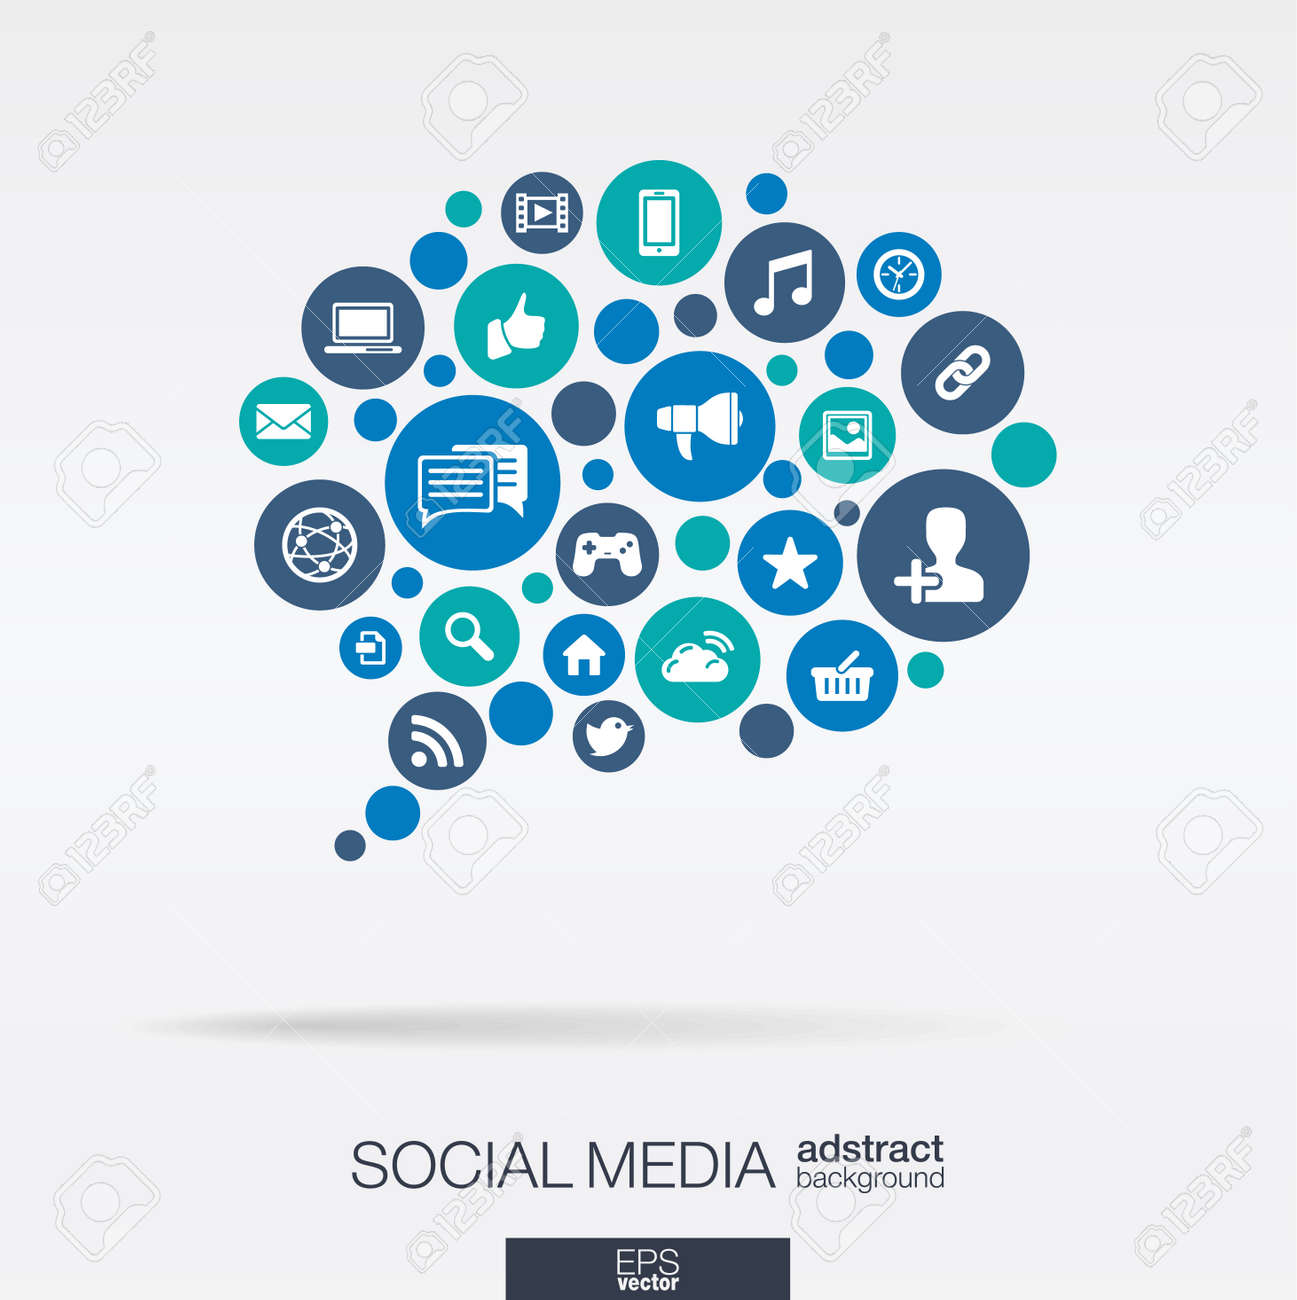 Color circles flat icons in a speech bubble shape: technology social media network computer concept. Abstract background with connected objects in integrated group of elements. Vector illustration - 41722651